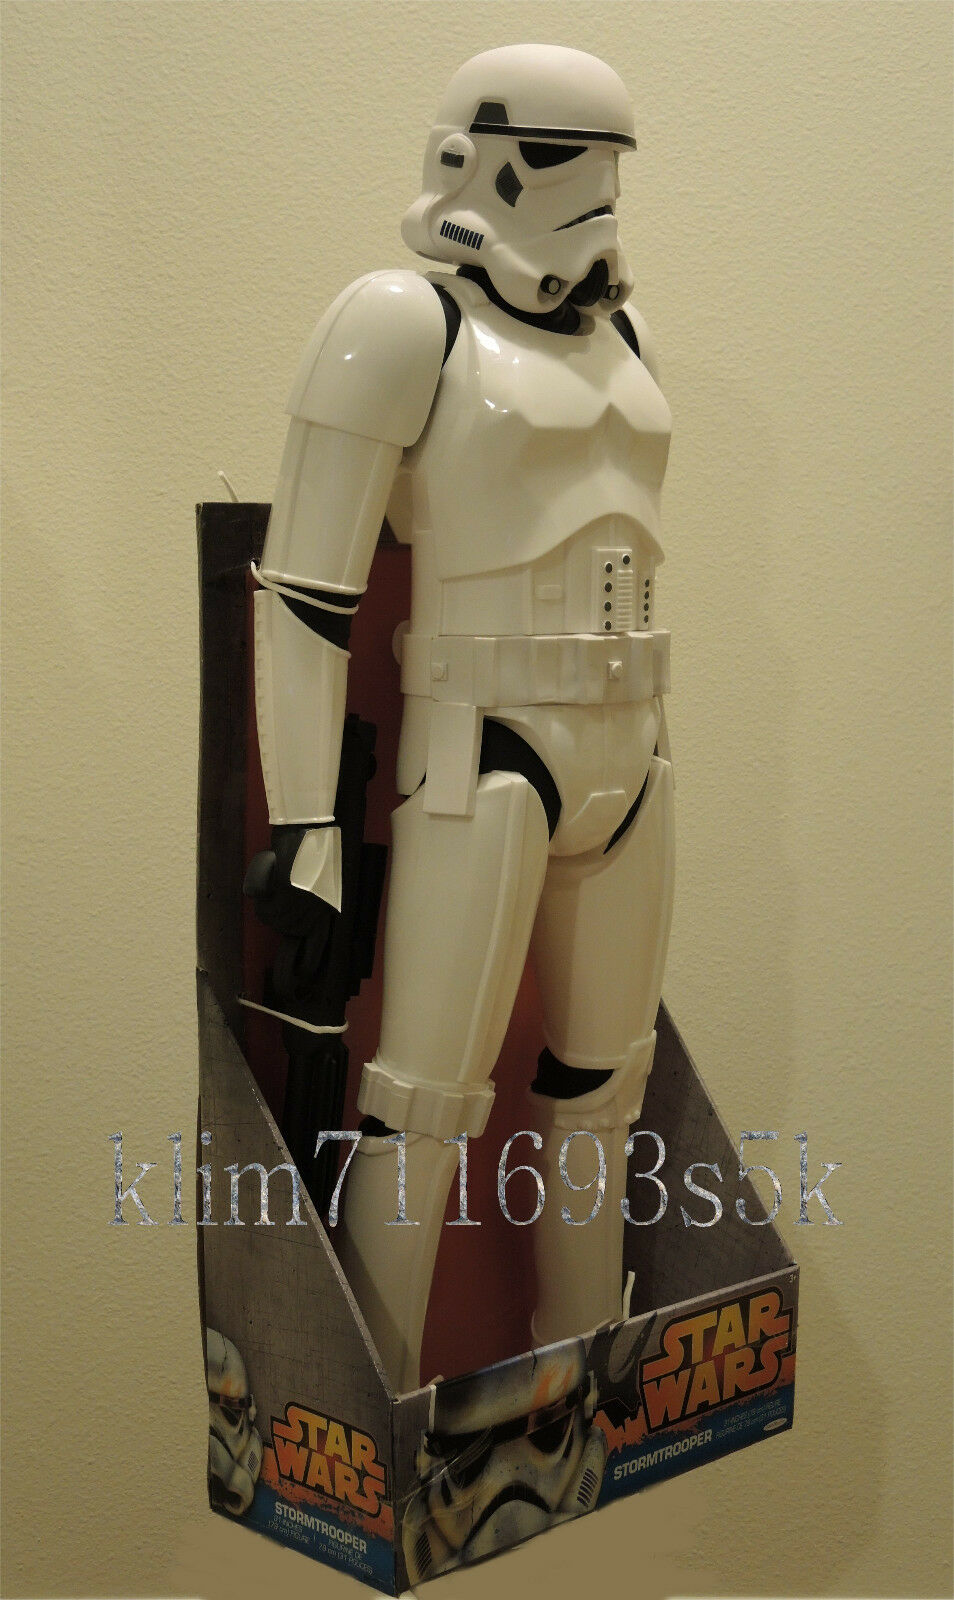 Star Star Star Wars Stormtrooper 31-Inch Action Figure 7b4c32